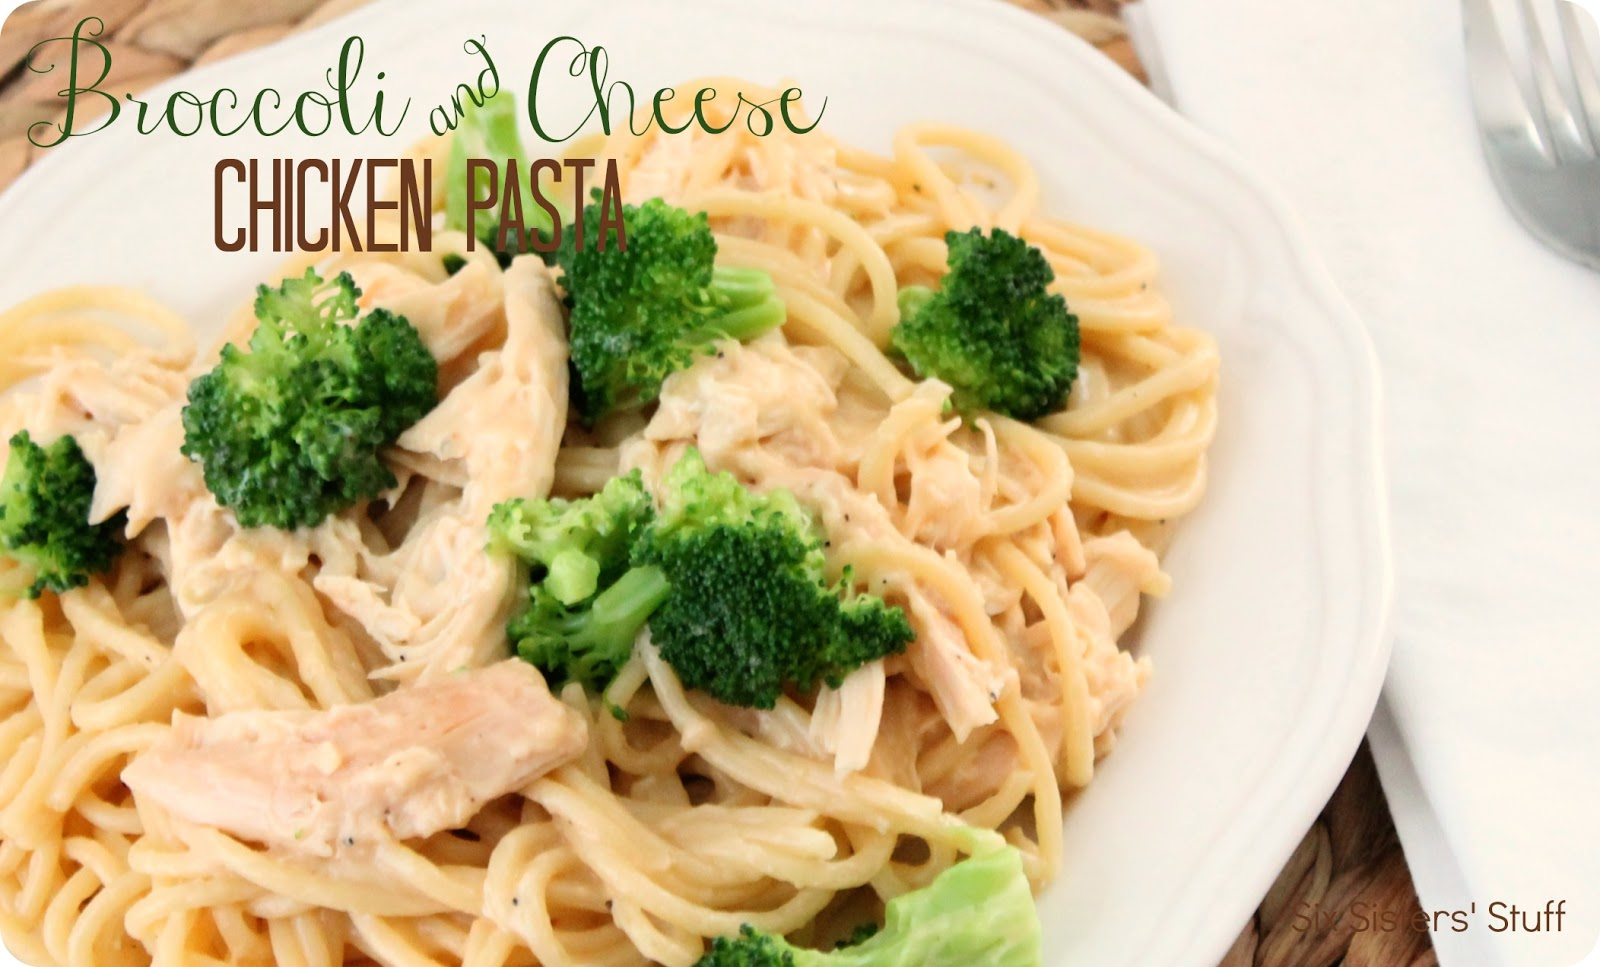 Broccoli and Cheese Chicken Pasta Recipe | Six Sisters' Stuff